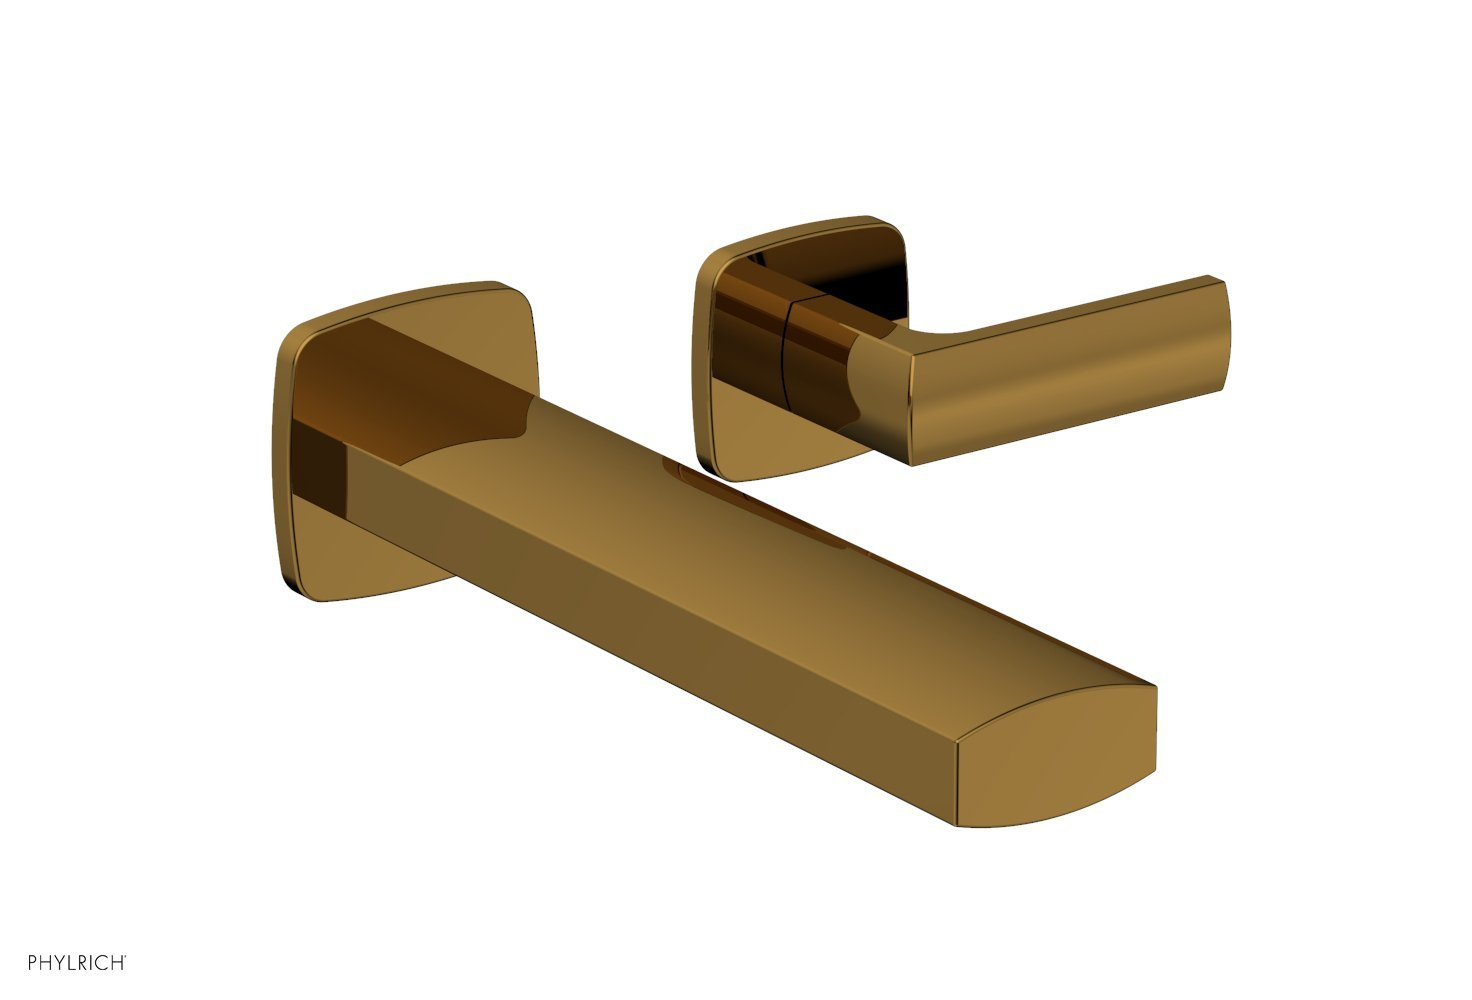 Phylrich 181-16-002 RADI Single Handle Wall Lavatory Set - Lever Handles - French Brass